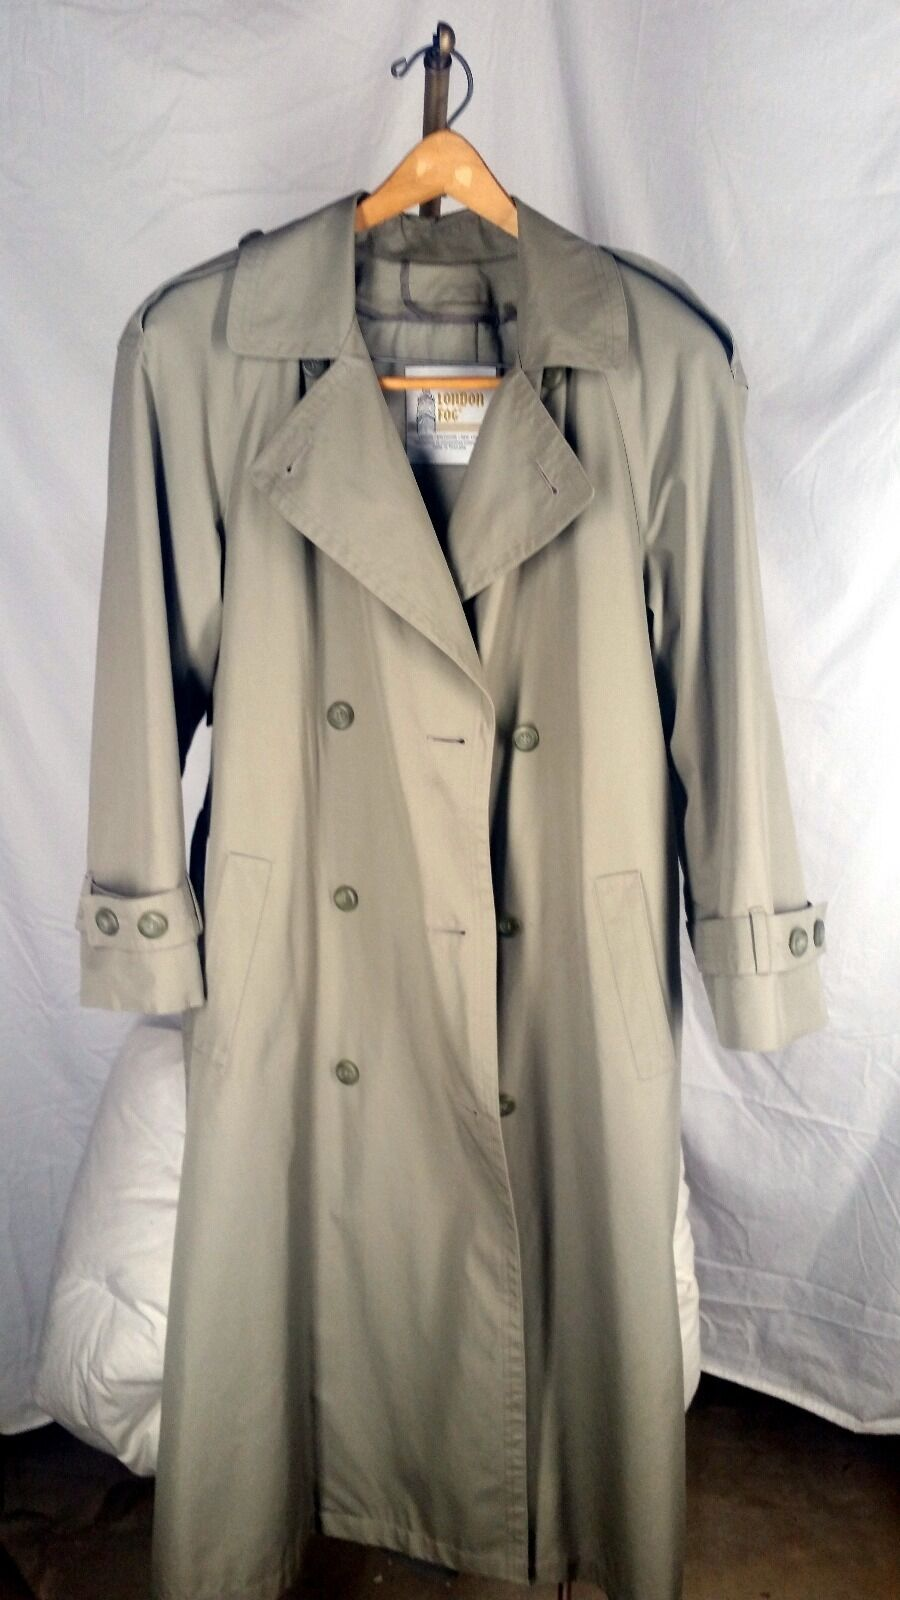 Vintage belted London Fog thinsulate trench coat - removable insulation 6 r